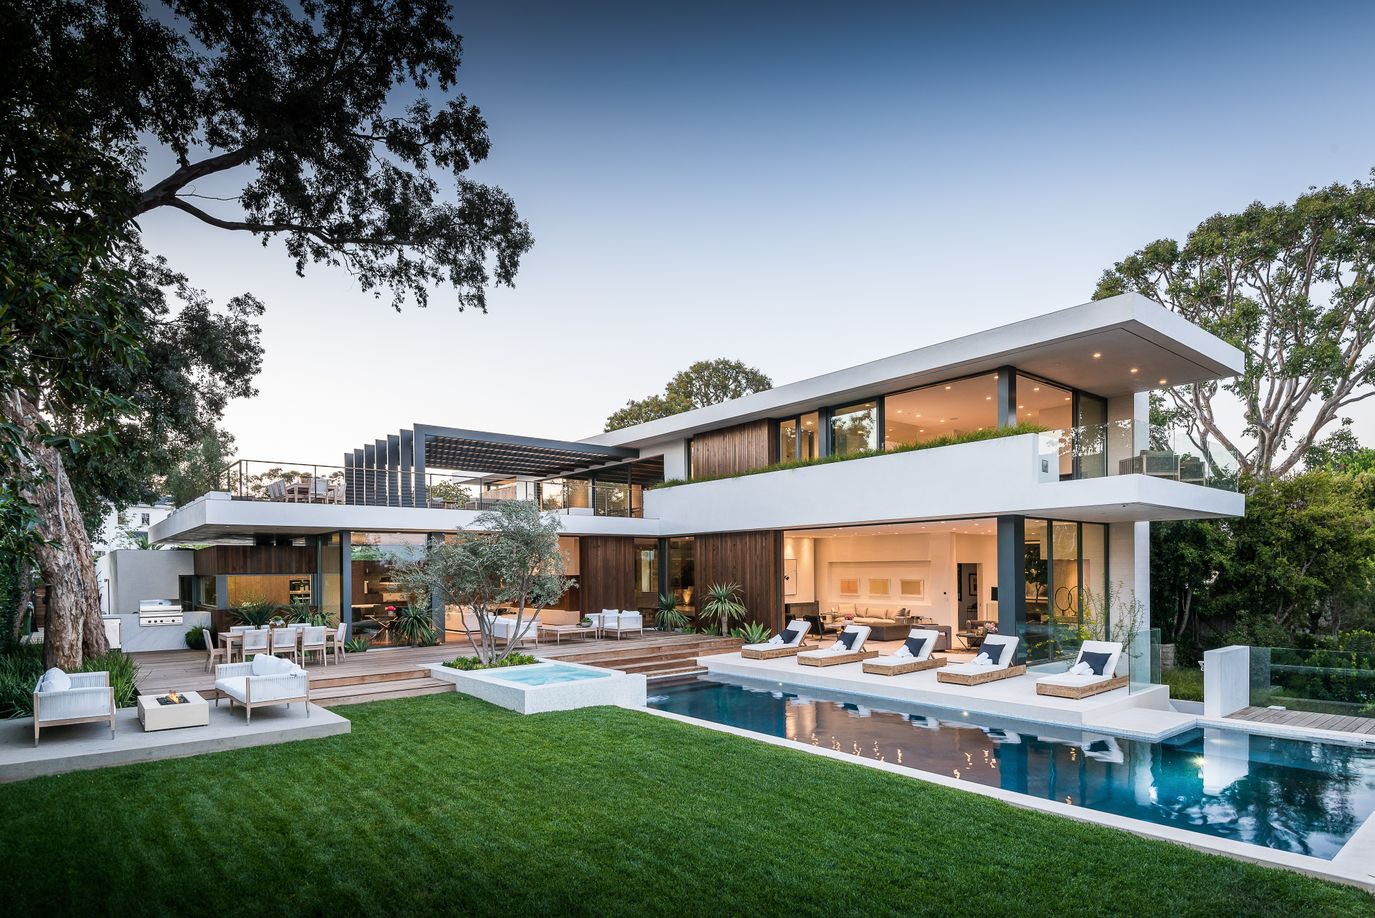 Luxury Modern Home with Swimming Pool in California